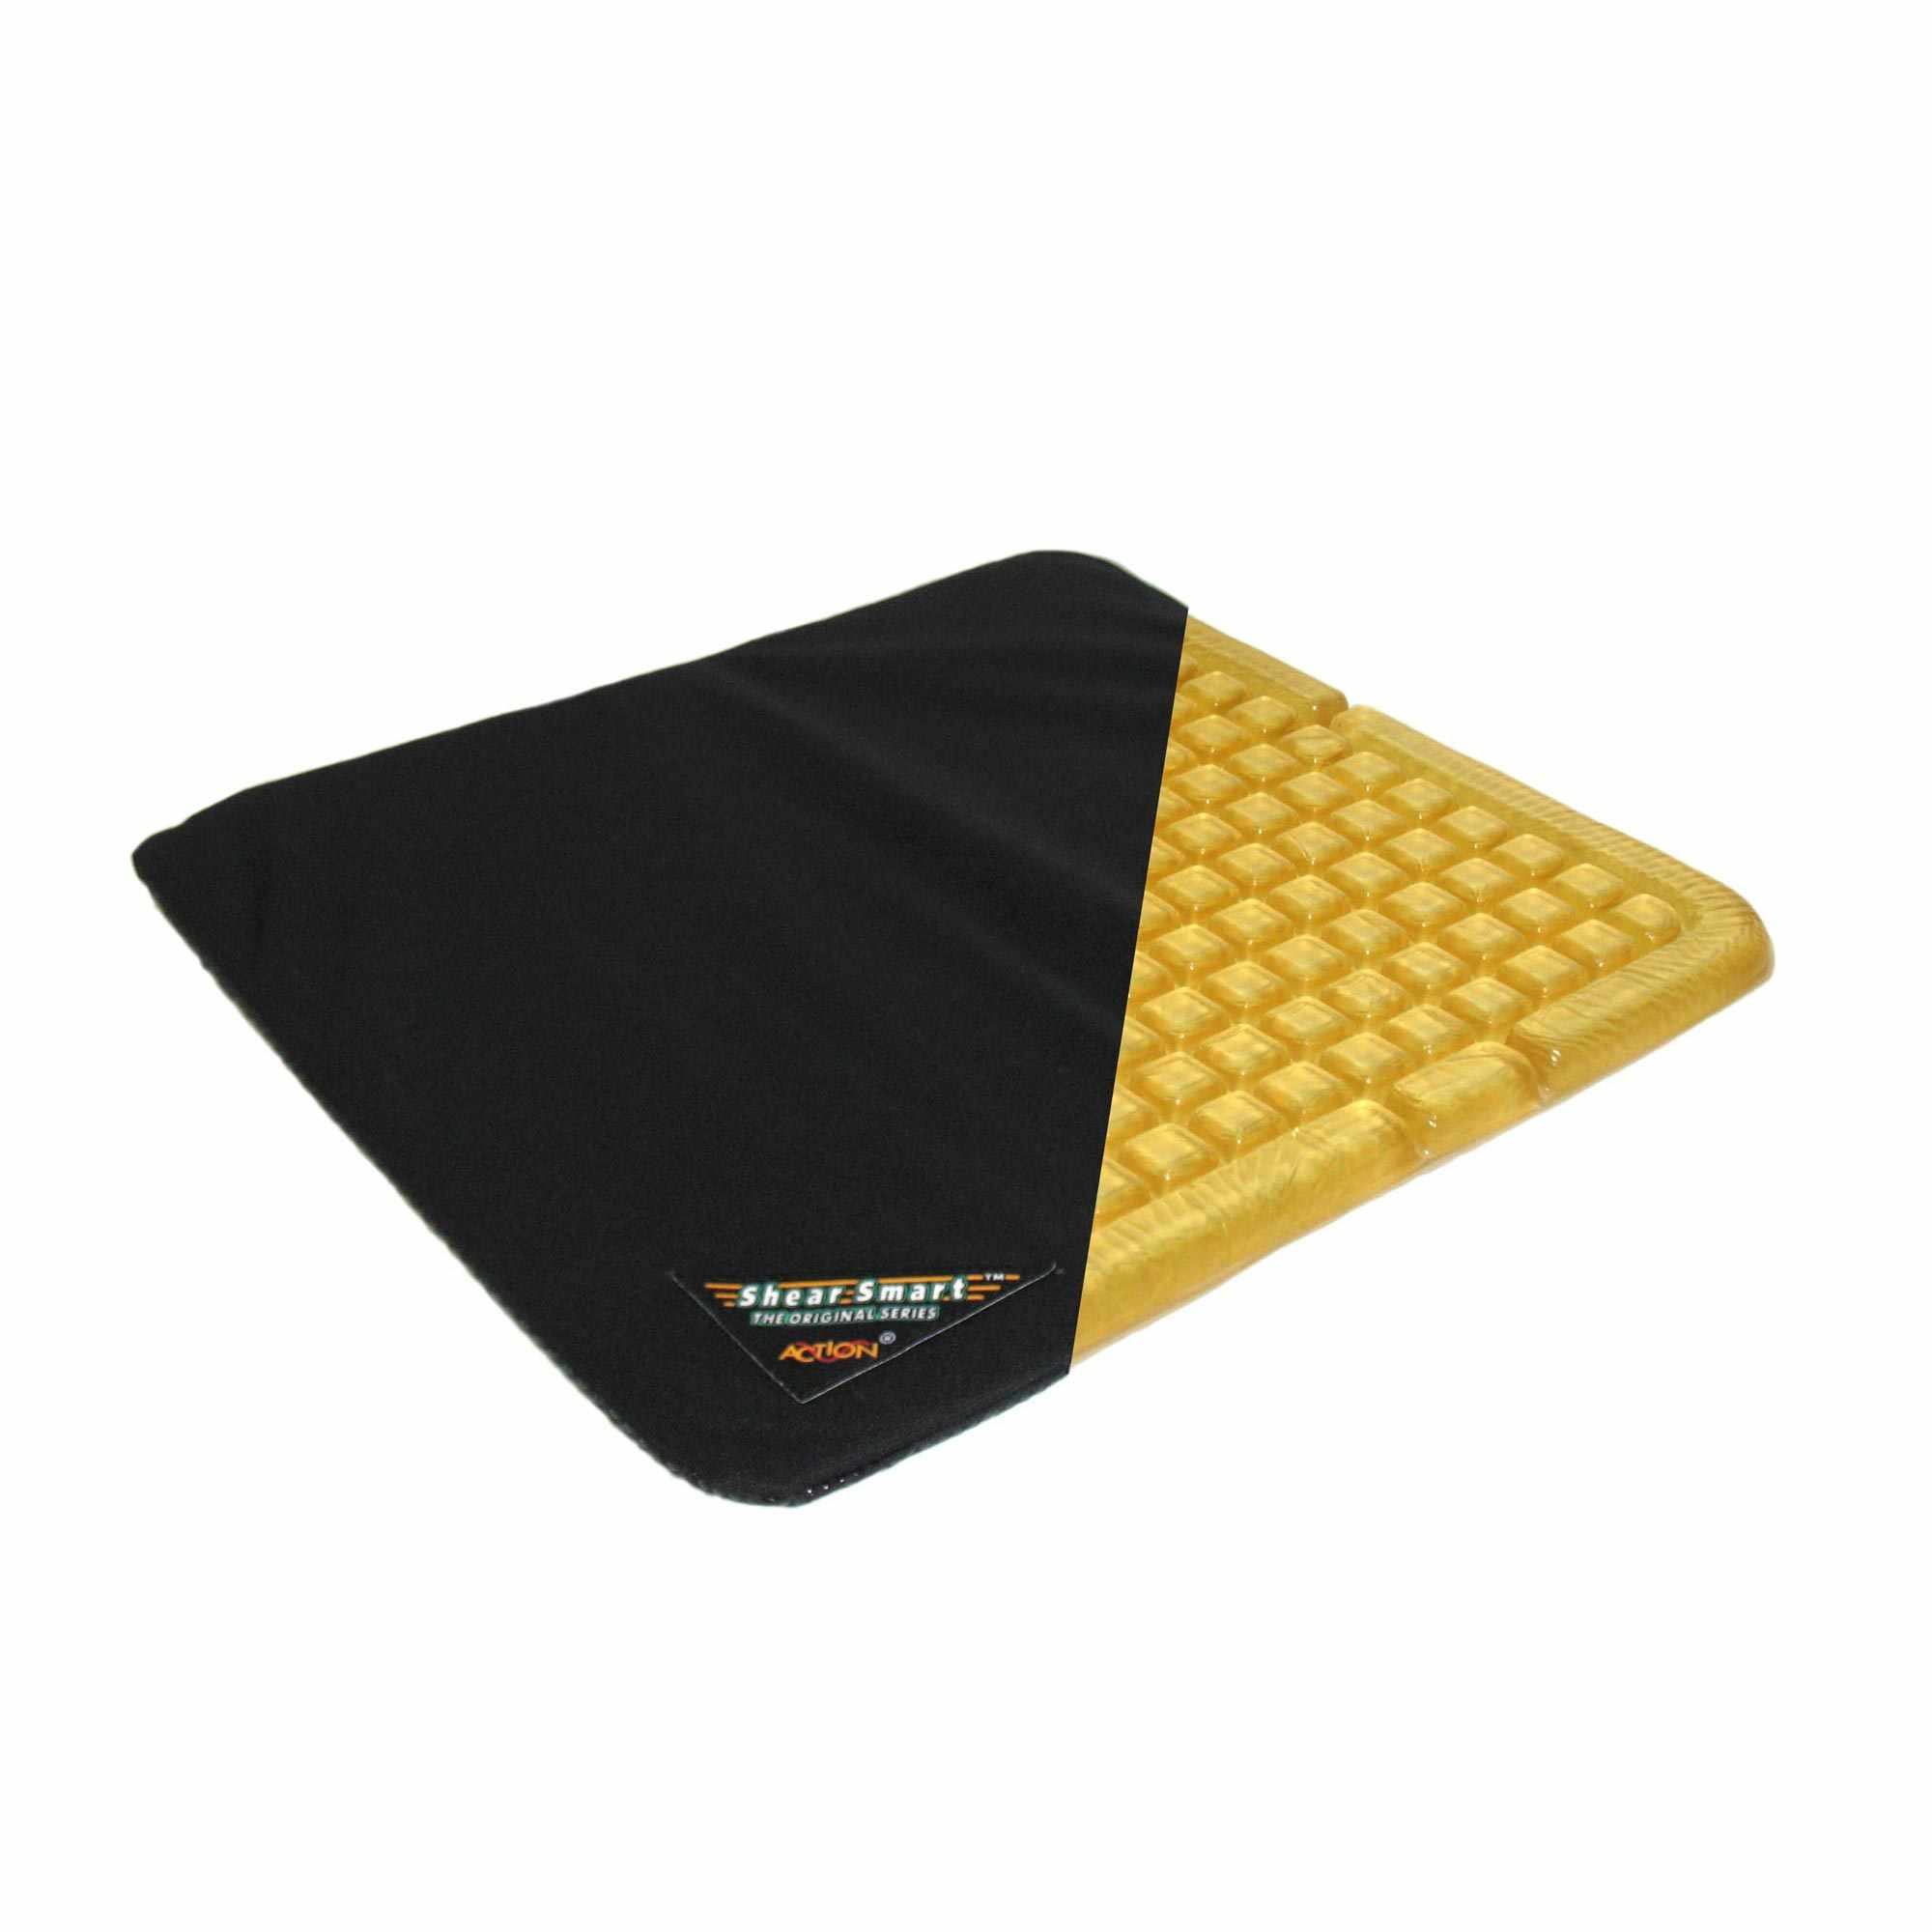 Action Products Shear smart pad